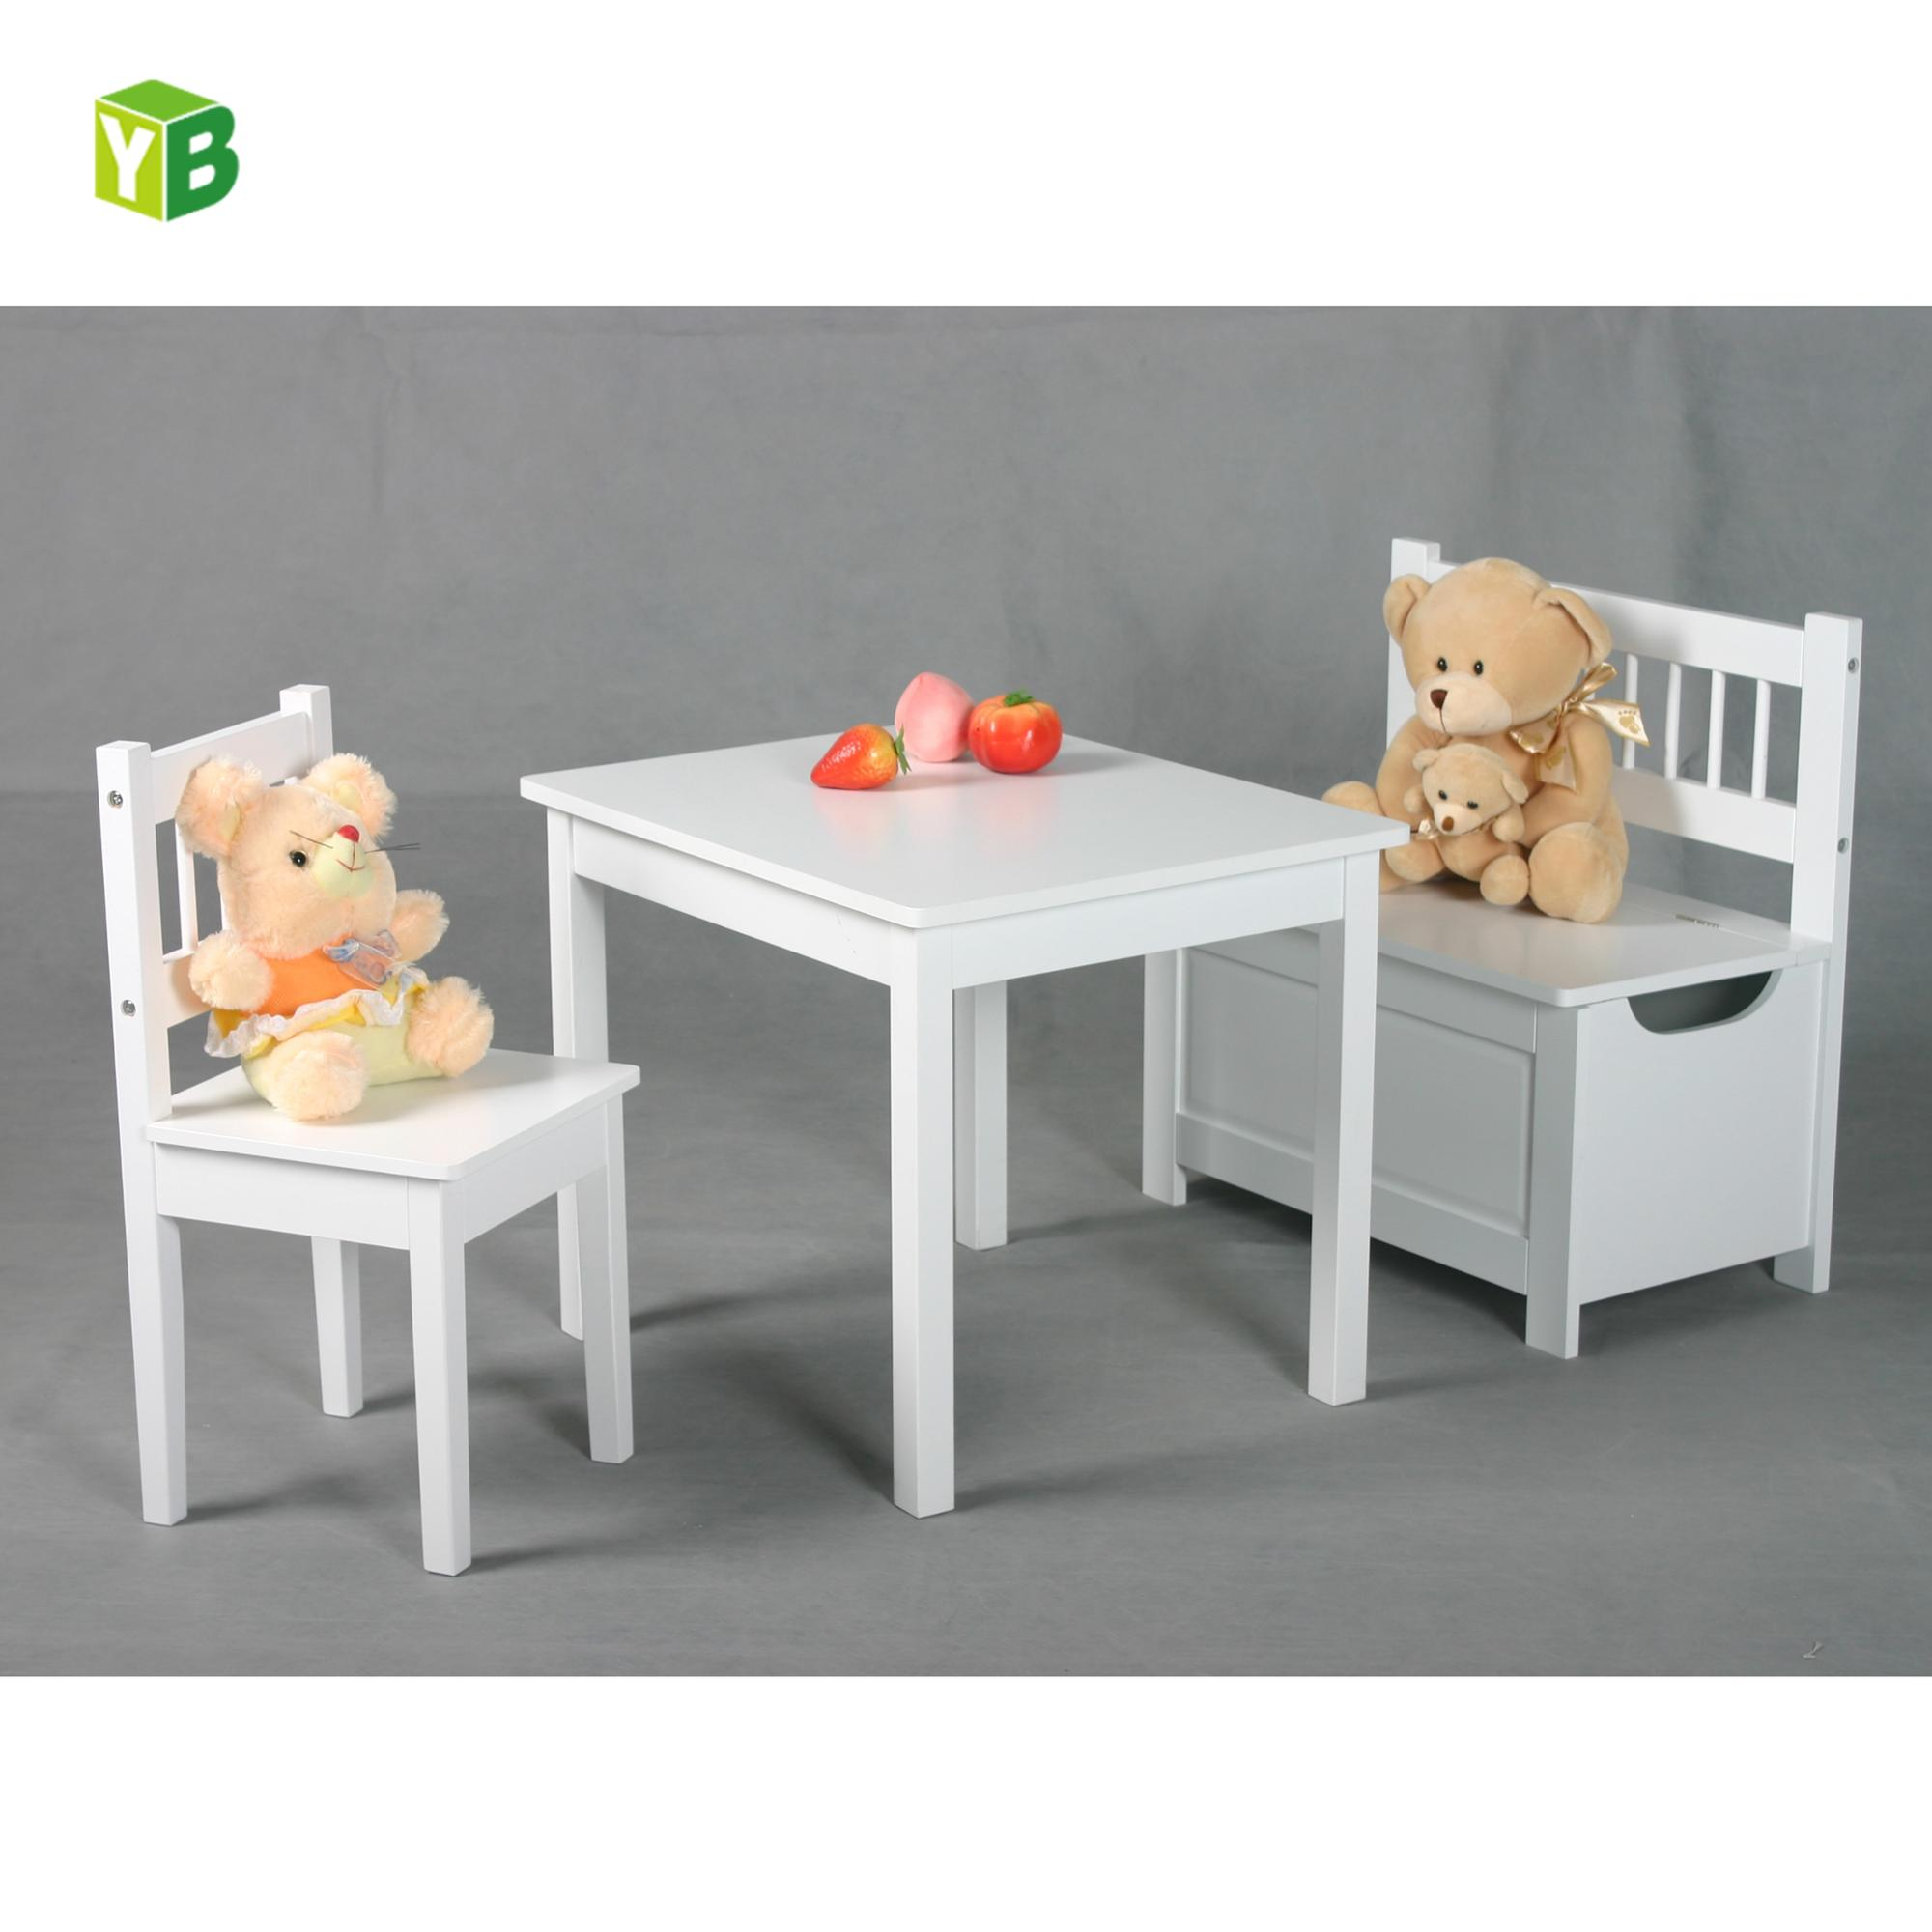 Yibang Cheap Price Kid Low Study Table Wooden Kids Study Table Design Buy Low Study Table Kids Study Table Design Wooden Study Table Designs Product